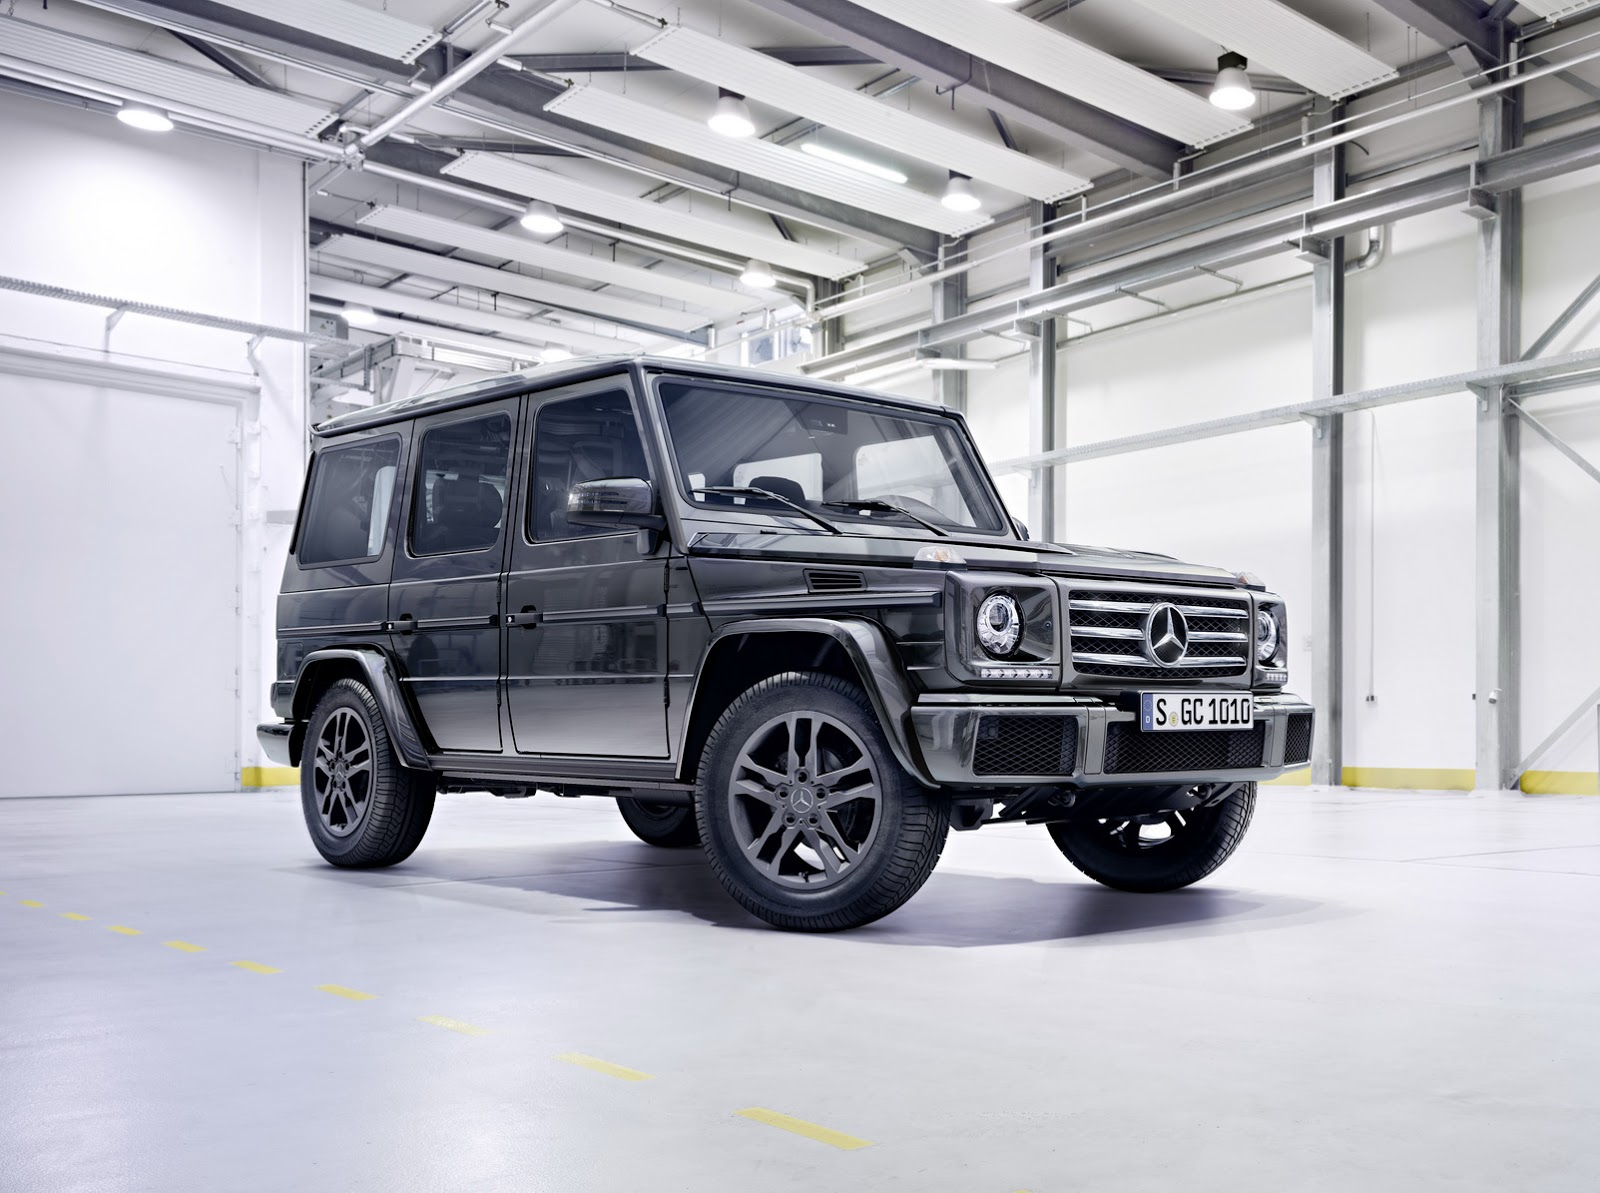 2016 mercedes benz g class gets new engines suspension for Mercedes benz g class engine